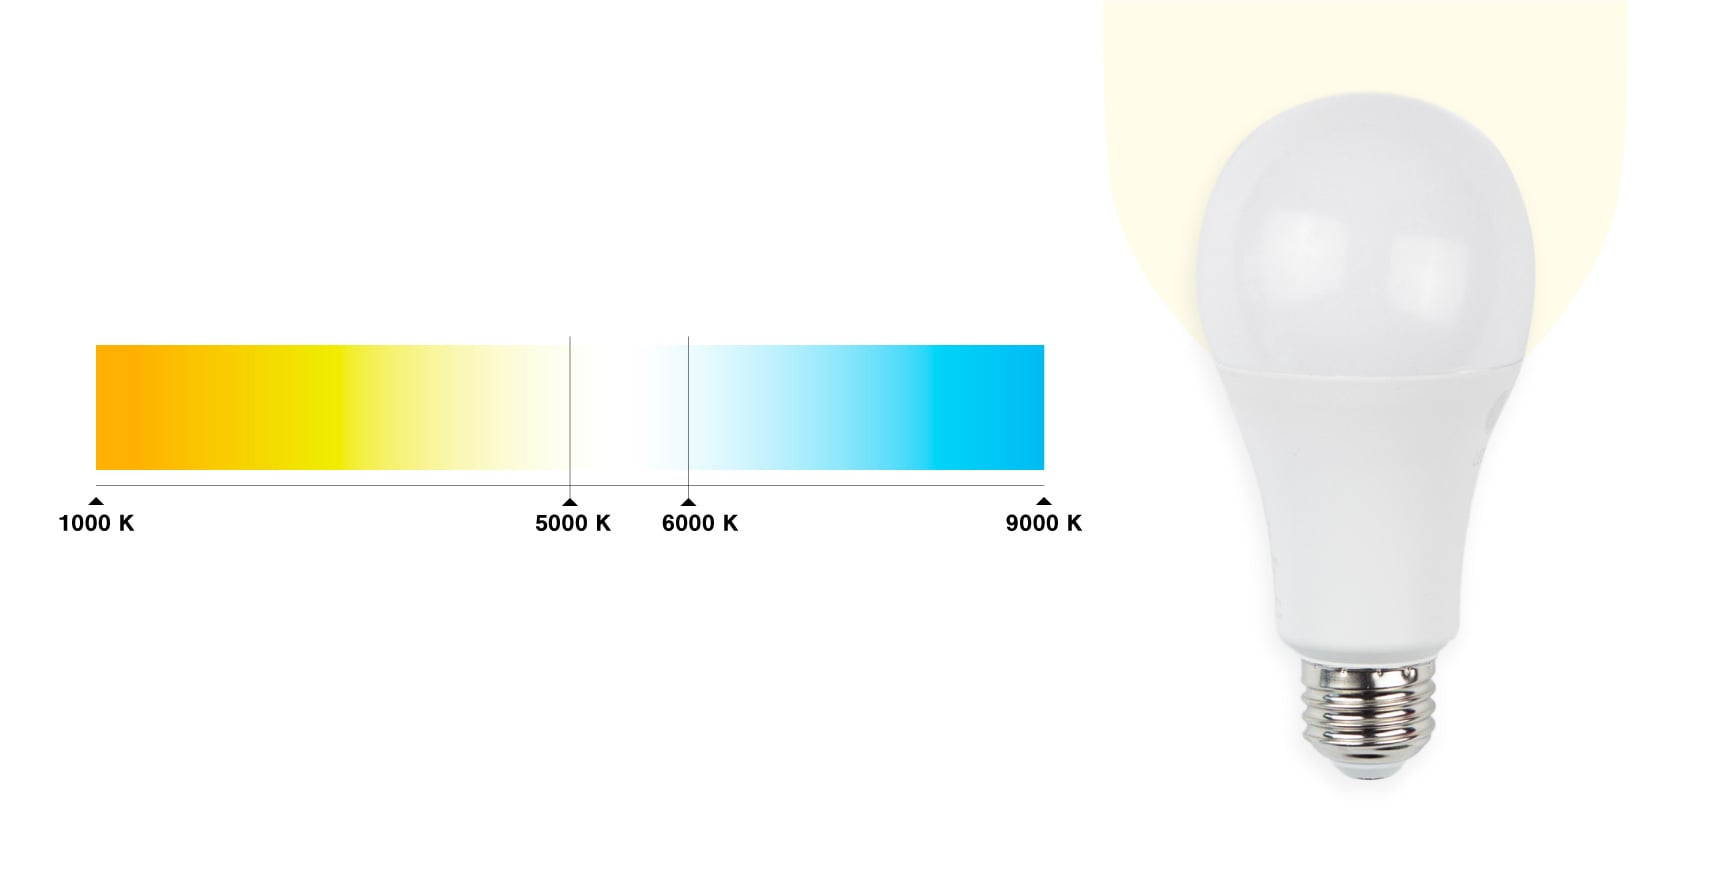 The lightbulbs we used with a 5000K color temp